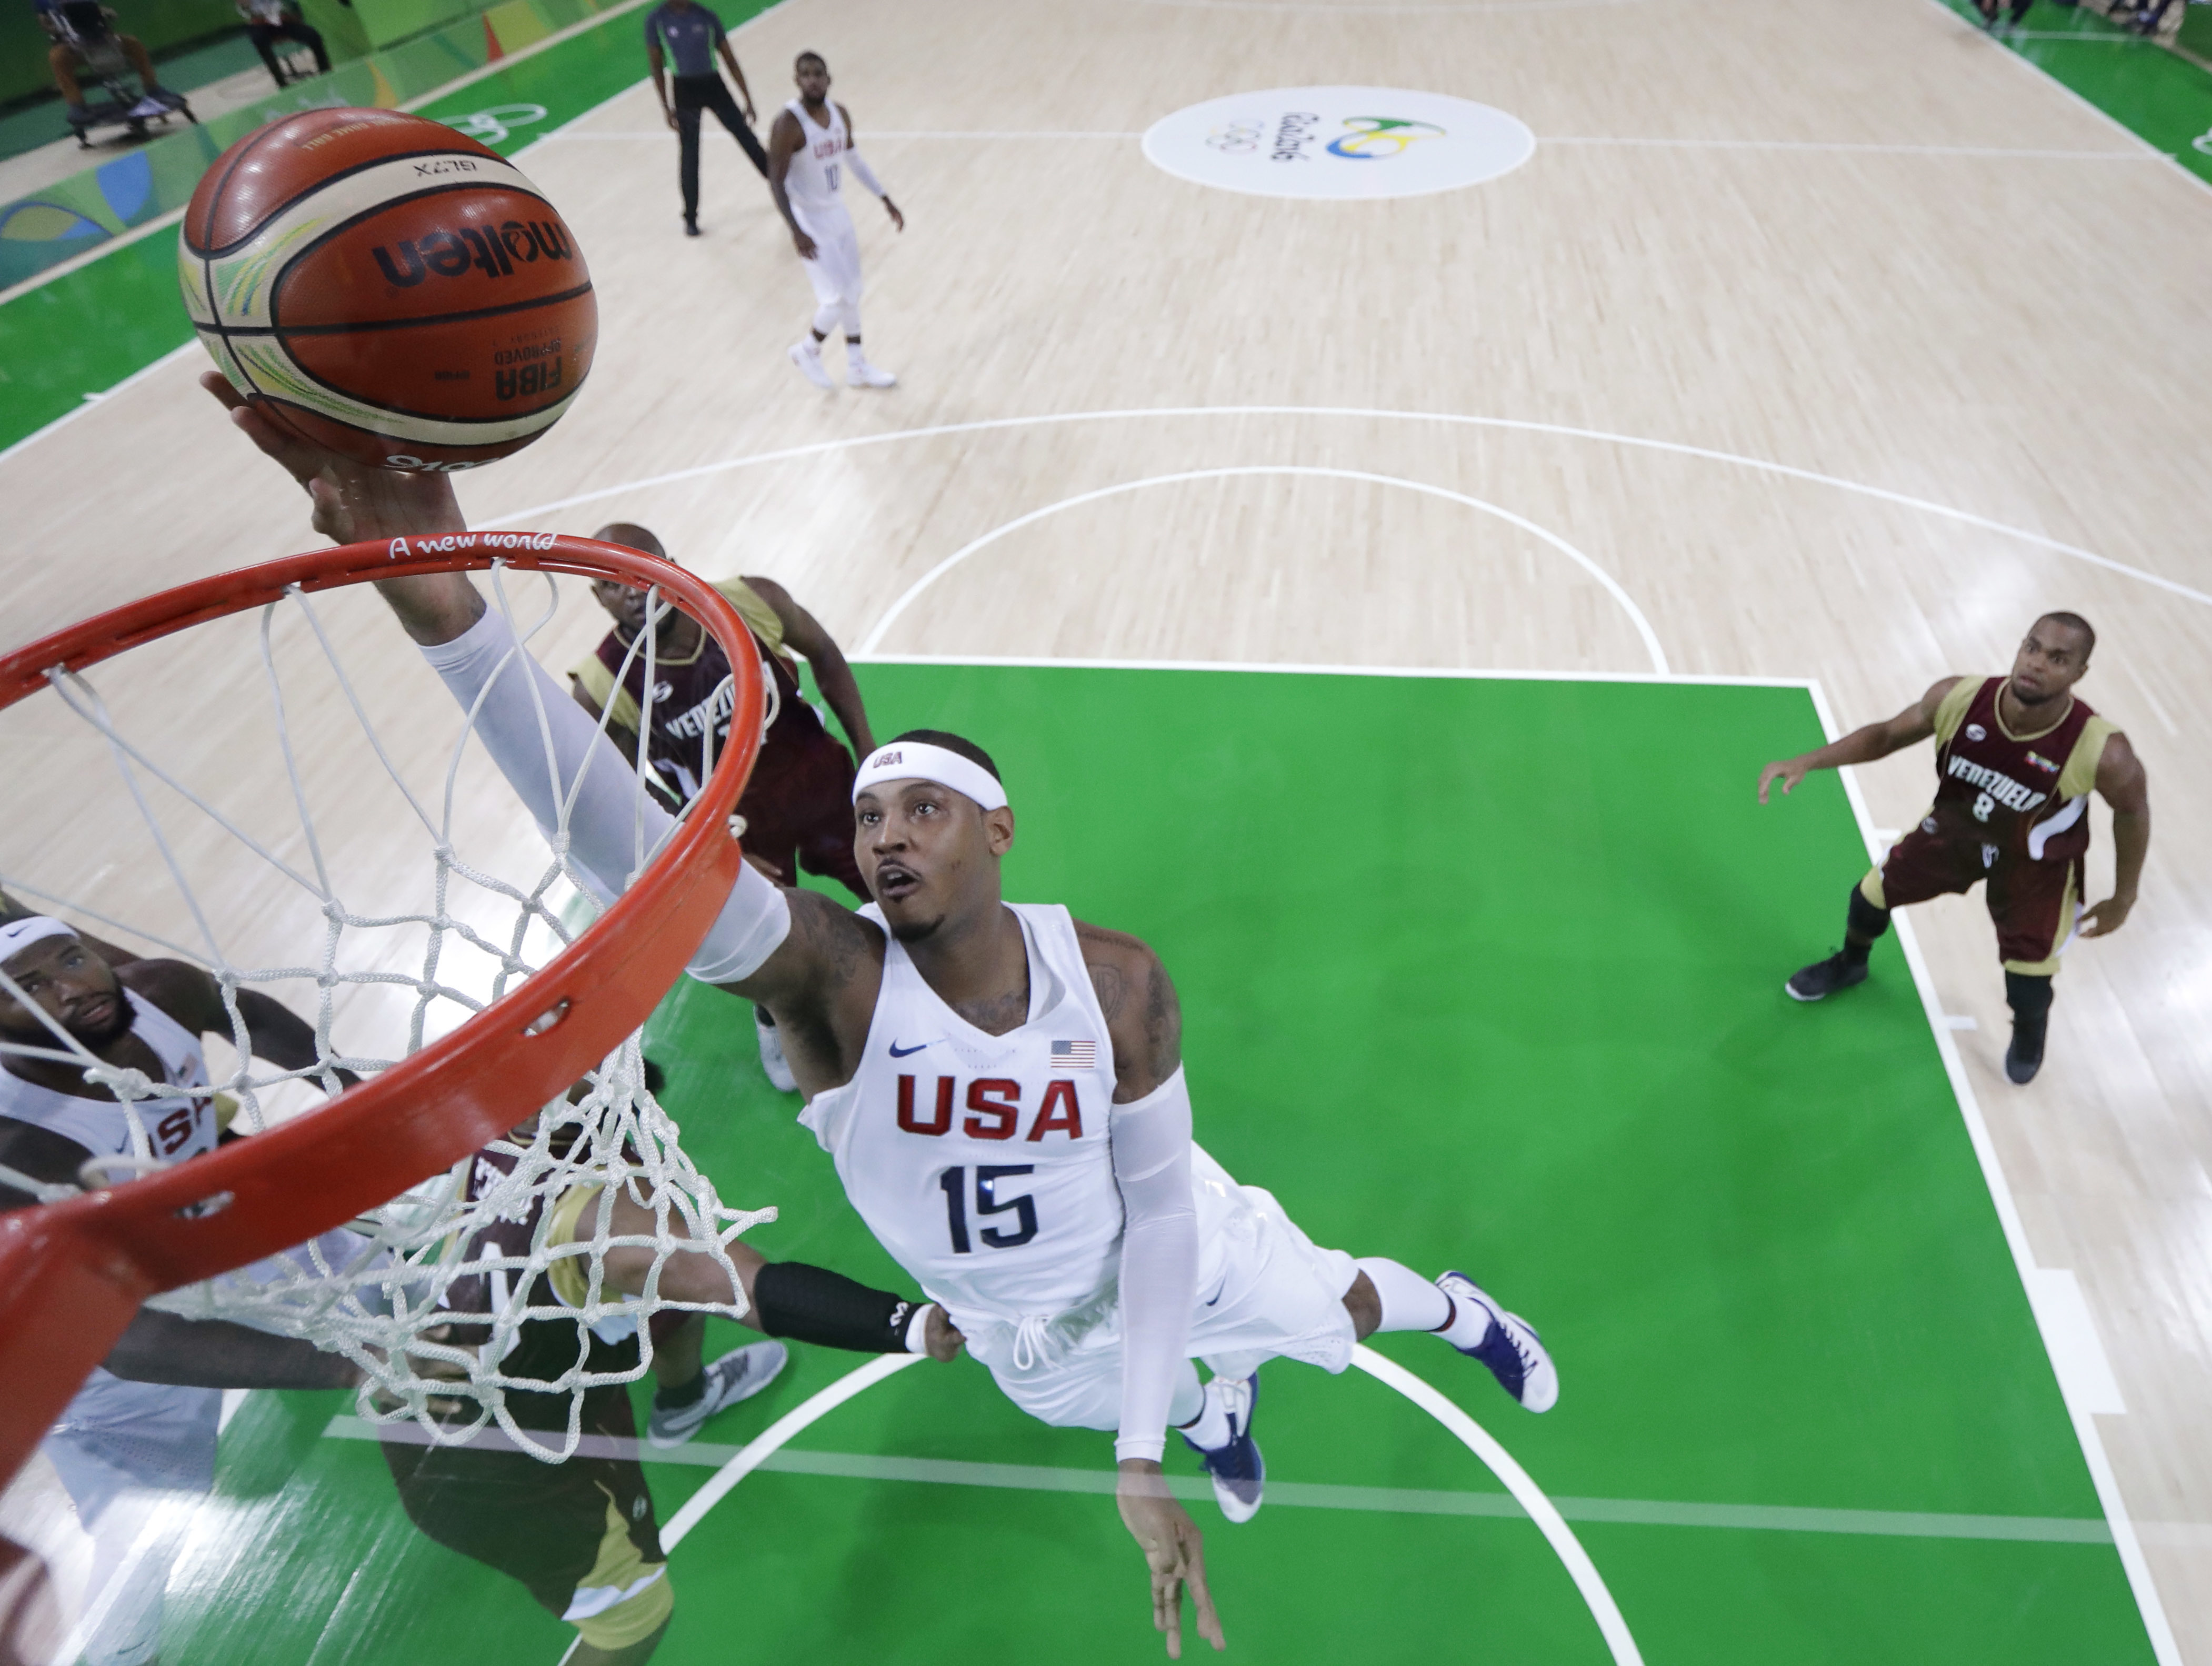 Jim Boeheim, Mark Cuban defend Carmelo Anthony after rejection by Team USA